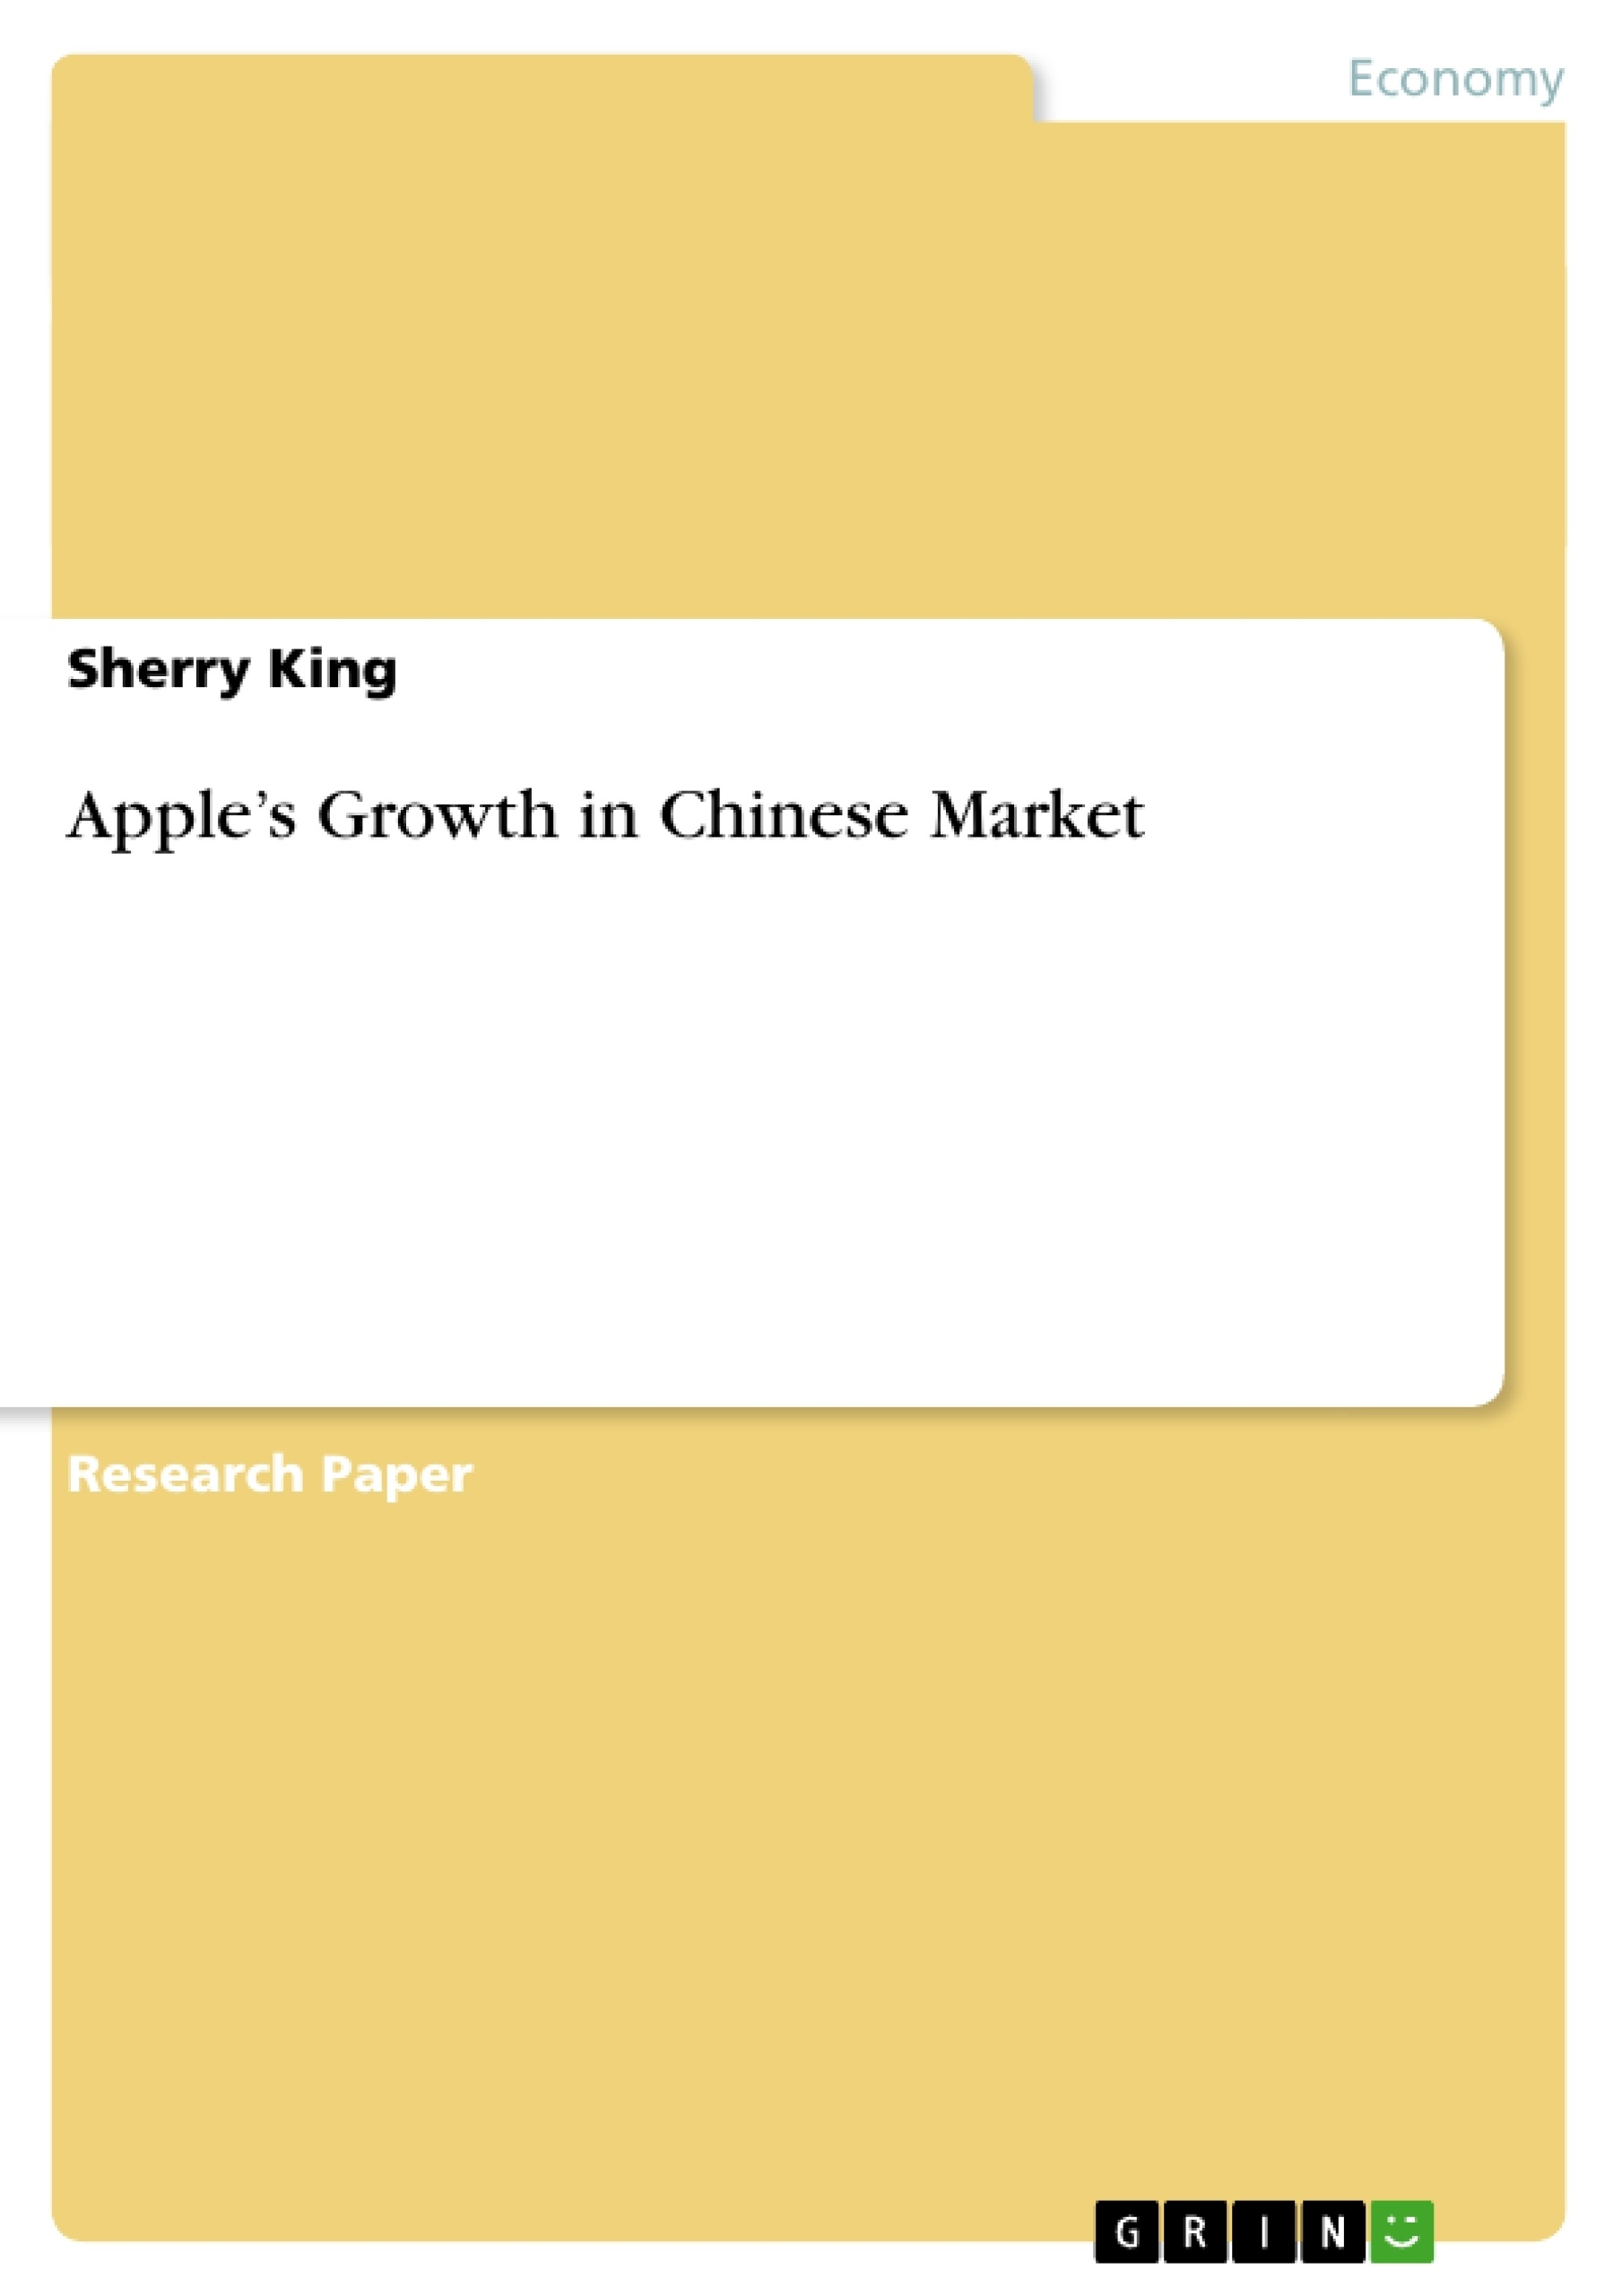 apple inc public relations plan essay Current corporate situation apple, inc was founded in 1976, formerly known as apple computer, inc, the company changed its name to apple inc in january.